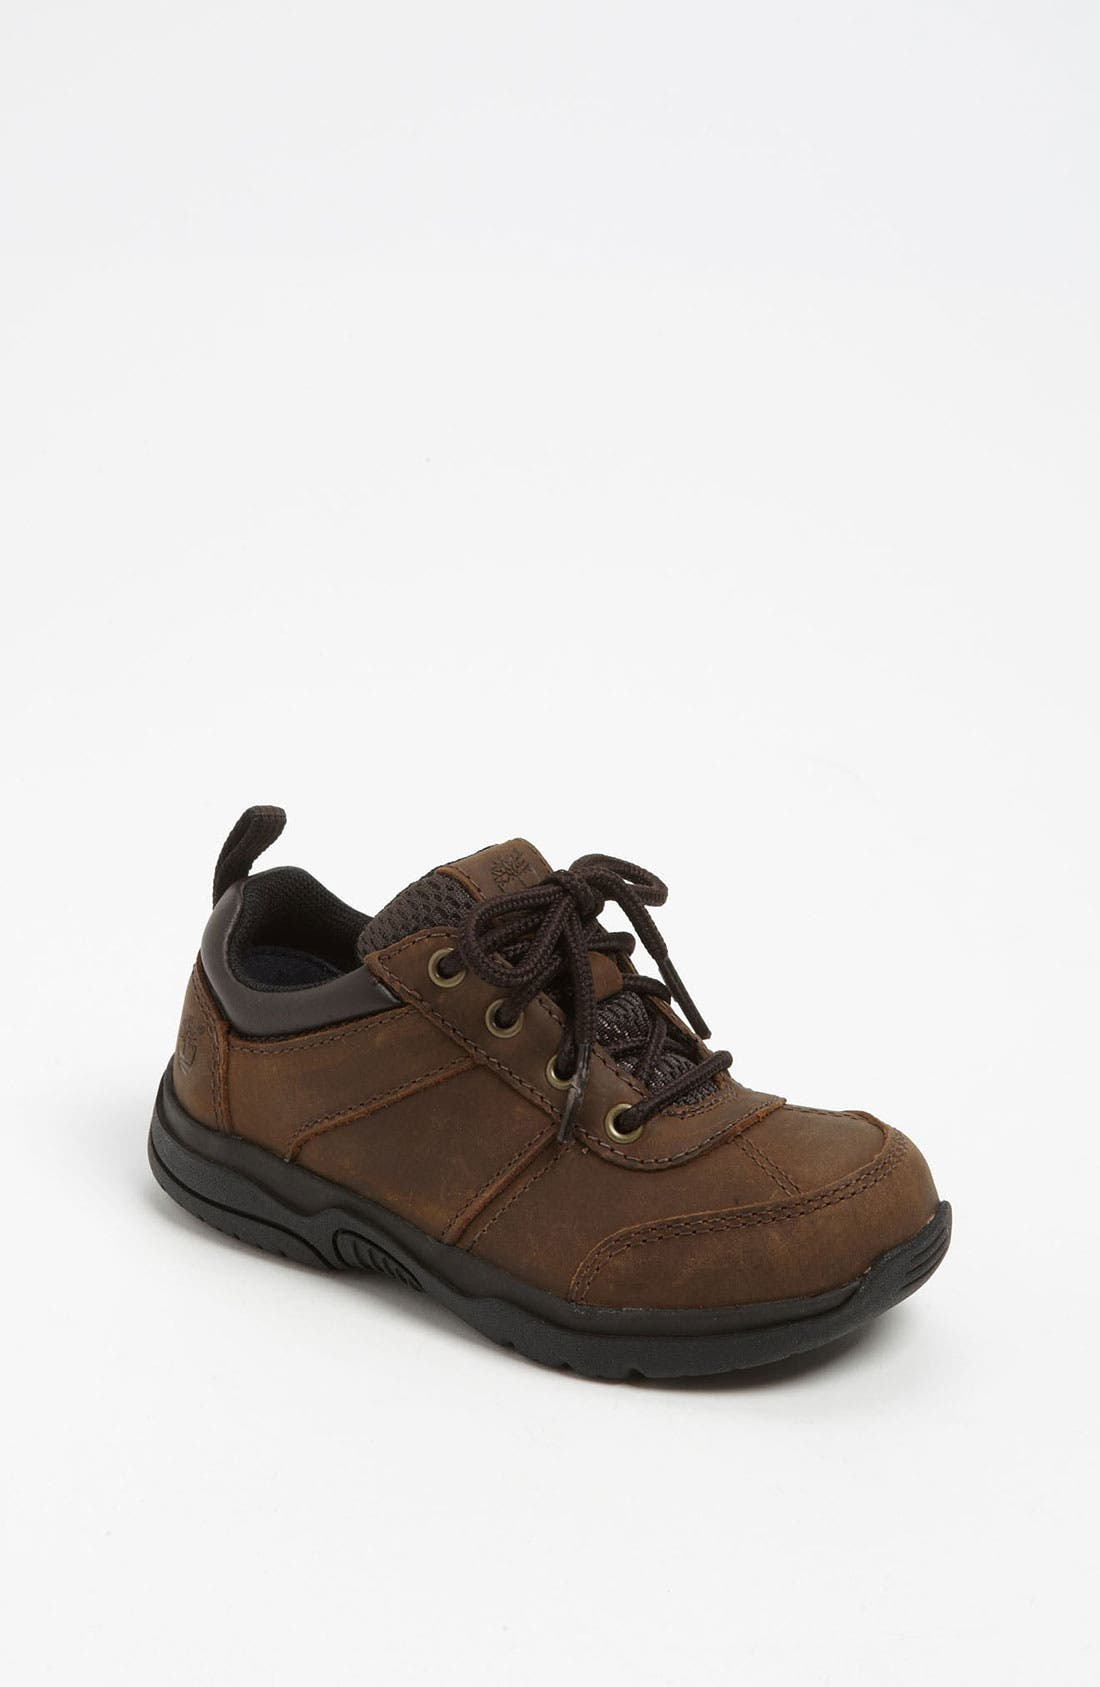 Alternate Image 1 Selected - Timberland Earthkeepers® 'Park Street' Oxford (Toddler, Little Kid & Big Kid)